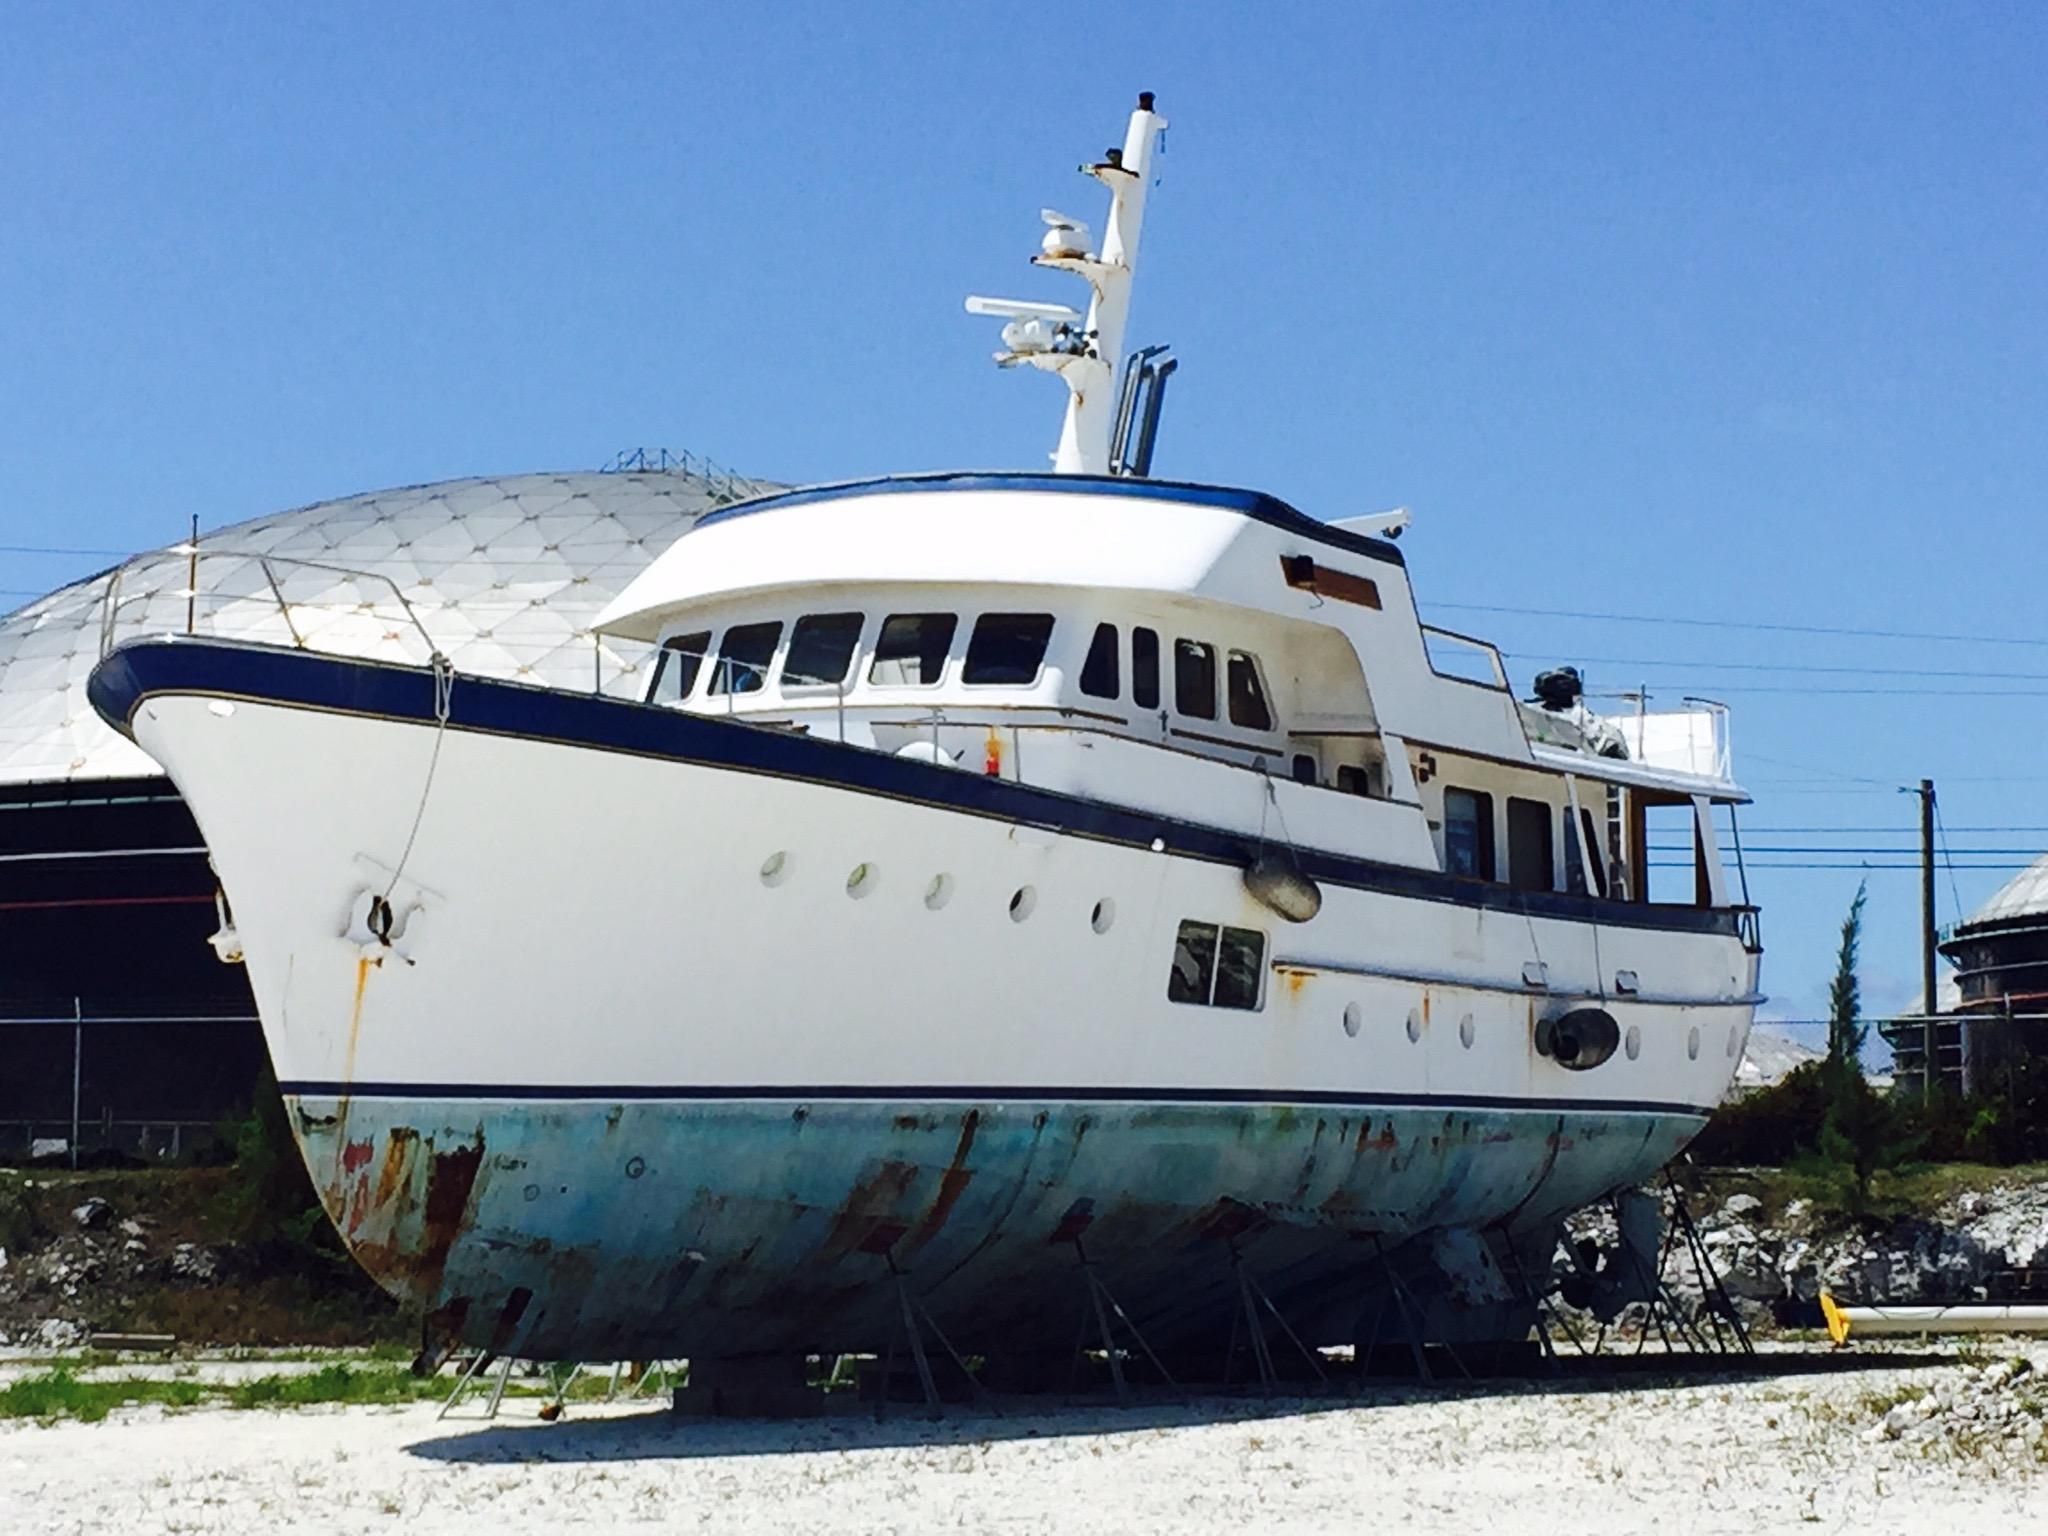 Midnight Express Boat For Sale >> 86 ft Feadship 1964 City (ex: Exact, Anoatok) Freeport | Denison Yacht Sales